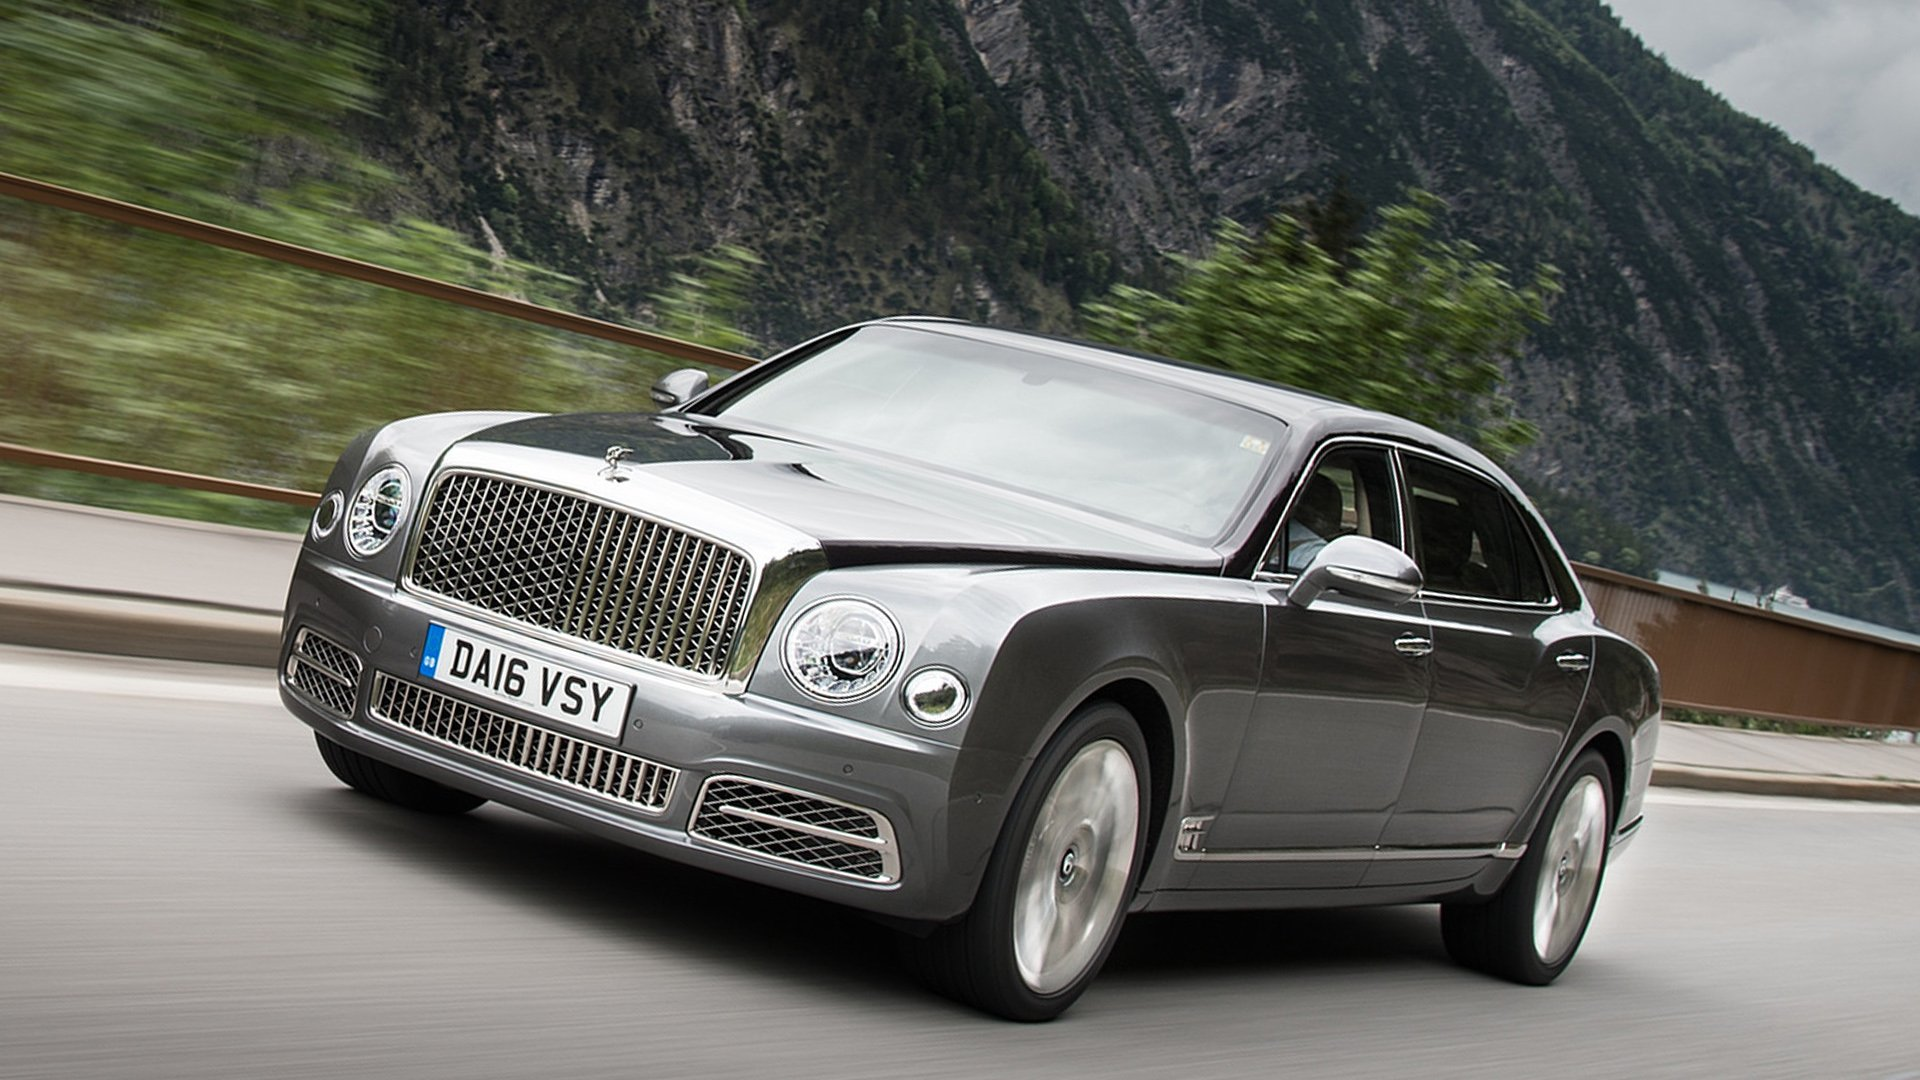 New 2019 Bentley Mulsanne Exterior Changes